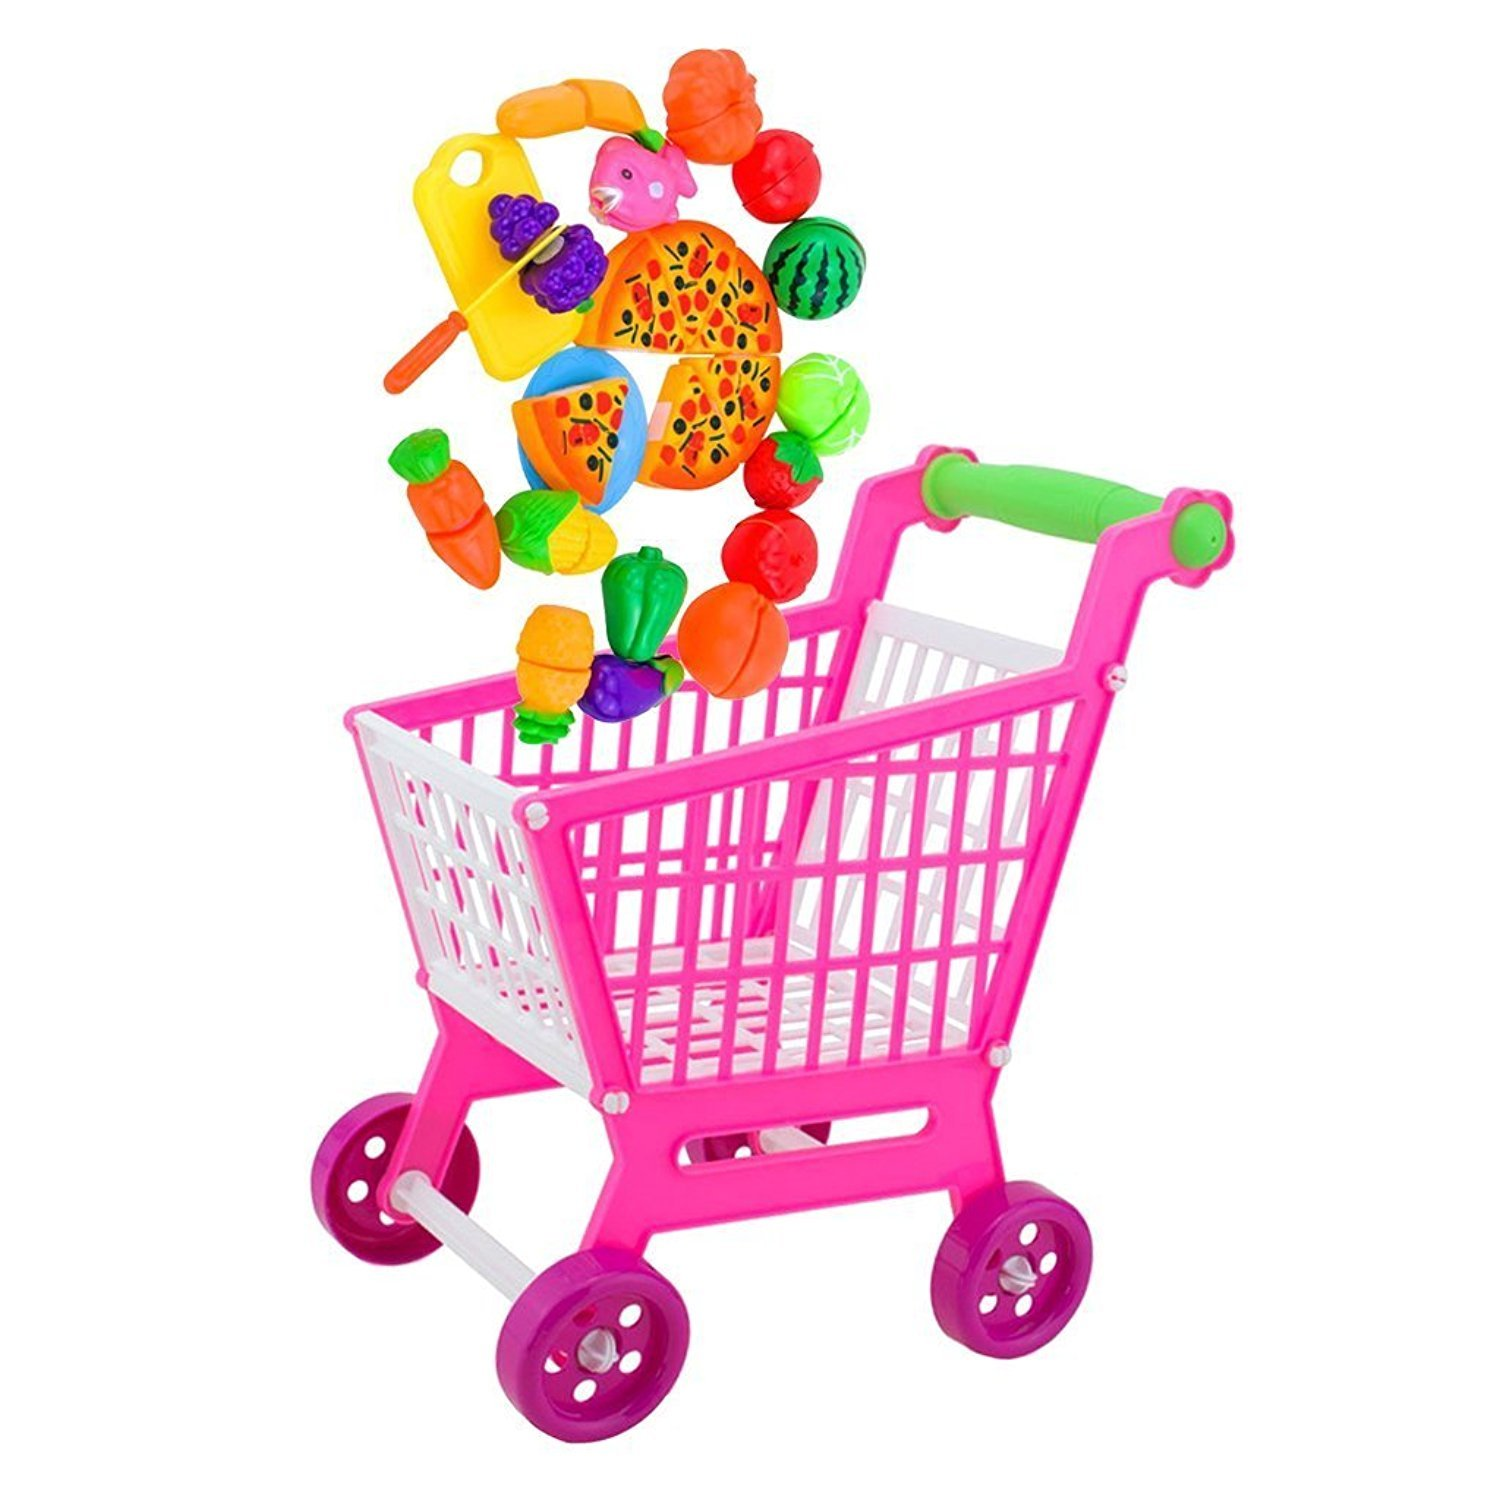 BARGAIN HOUSE Mini Shopping Hand Trolley Cart 24 pieces with Food Set Children Playground Playing Toys Gifts by BARGAIN HOUSE